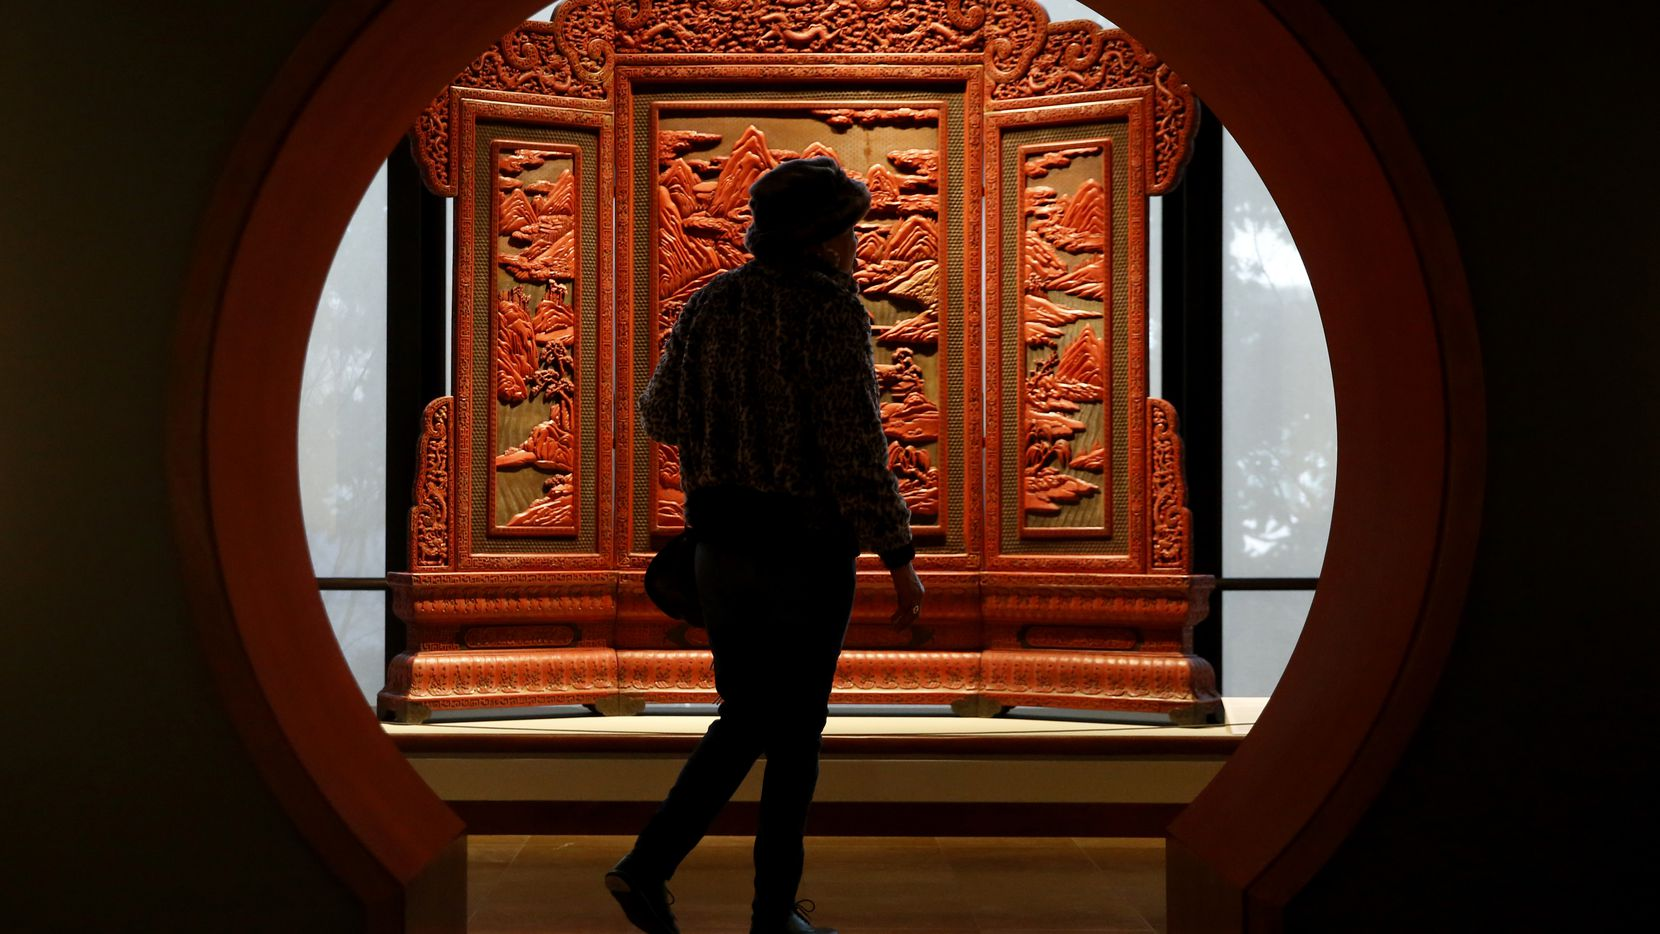 Florence Barnett walks past a lacquered screen at the Crow Museum of Asian Art in Dallas on Jan. 24, 2019.